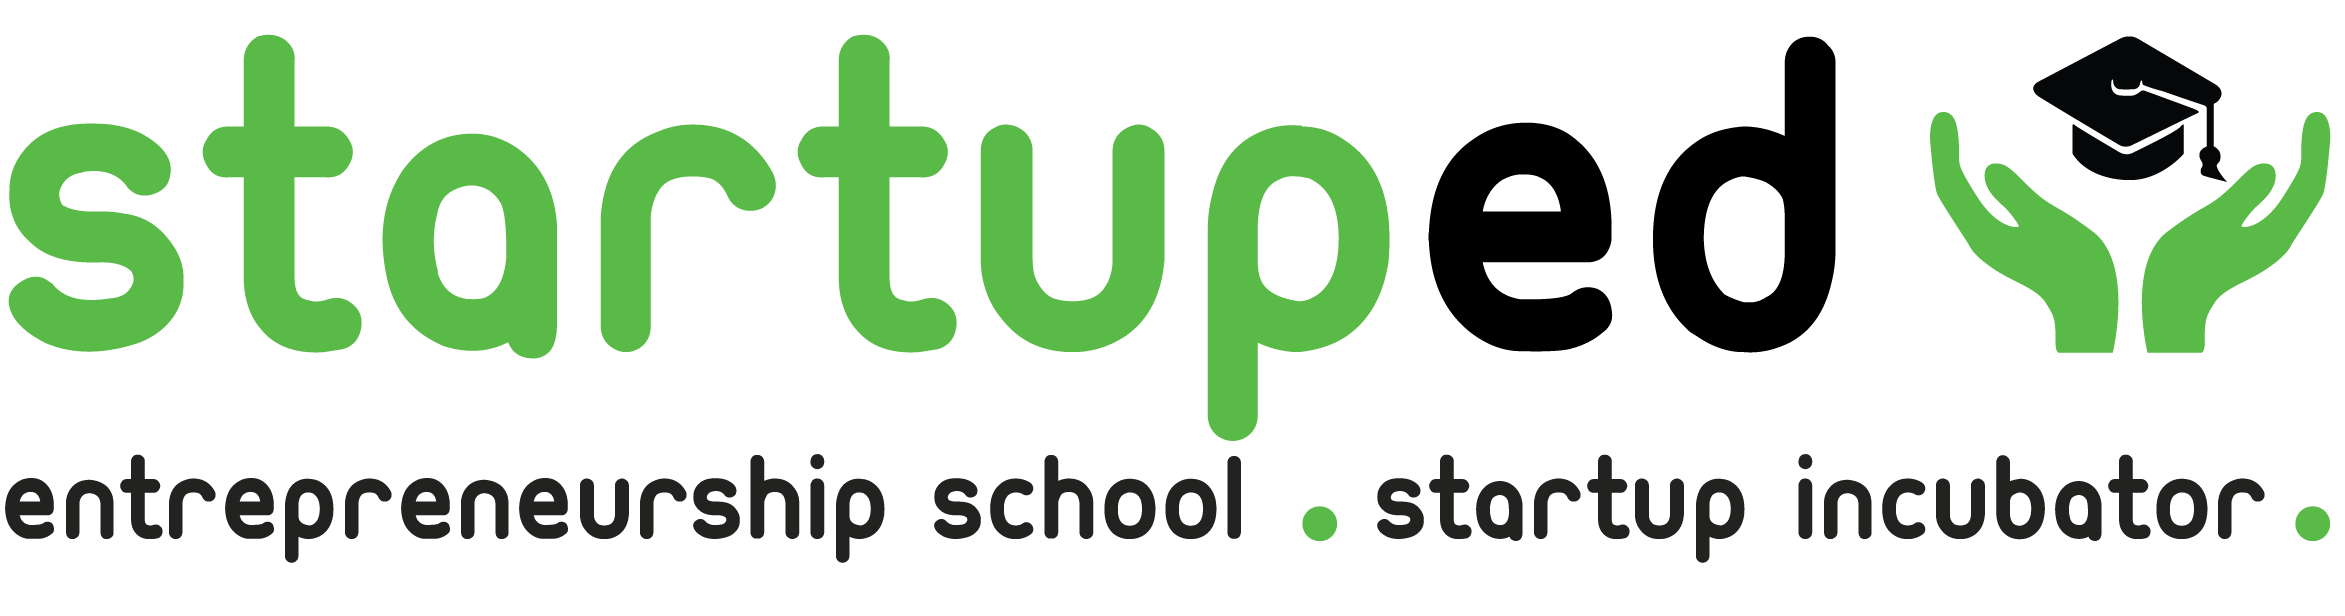 startuped-logo